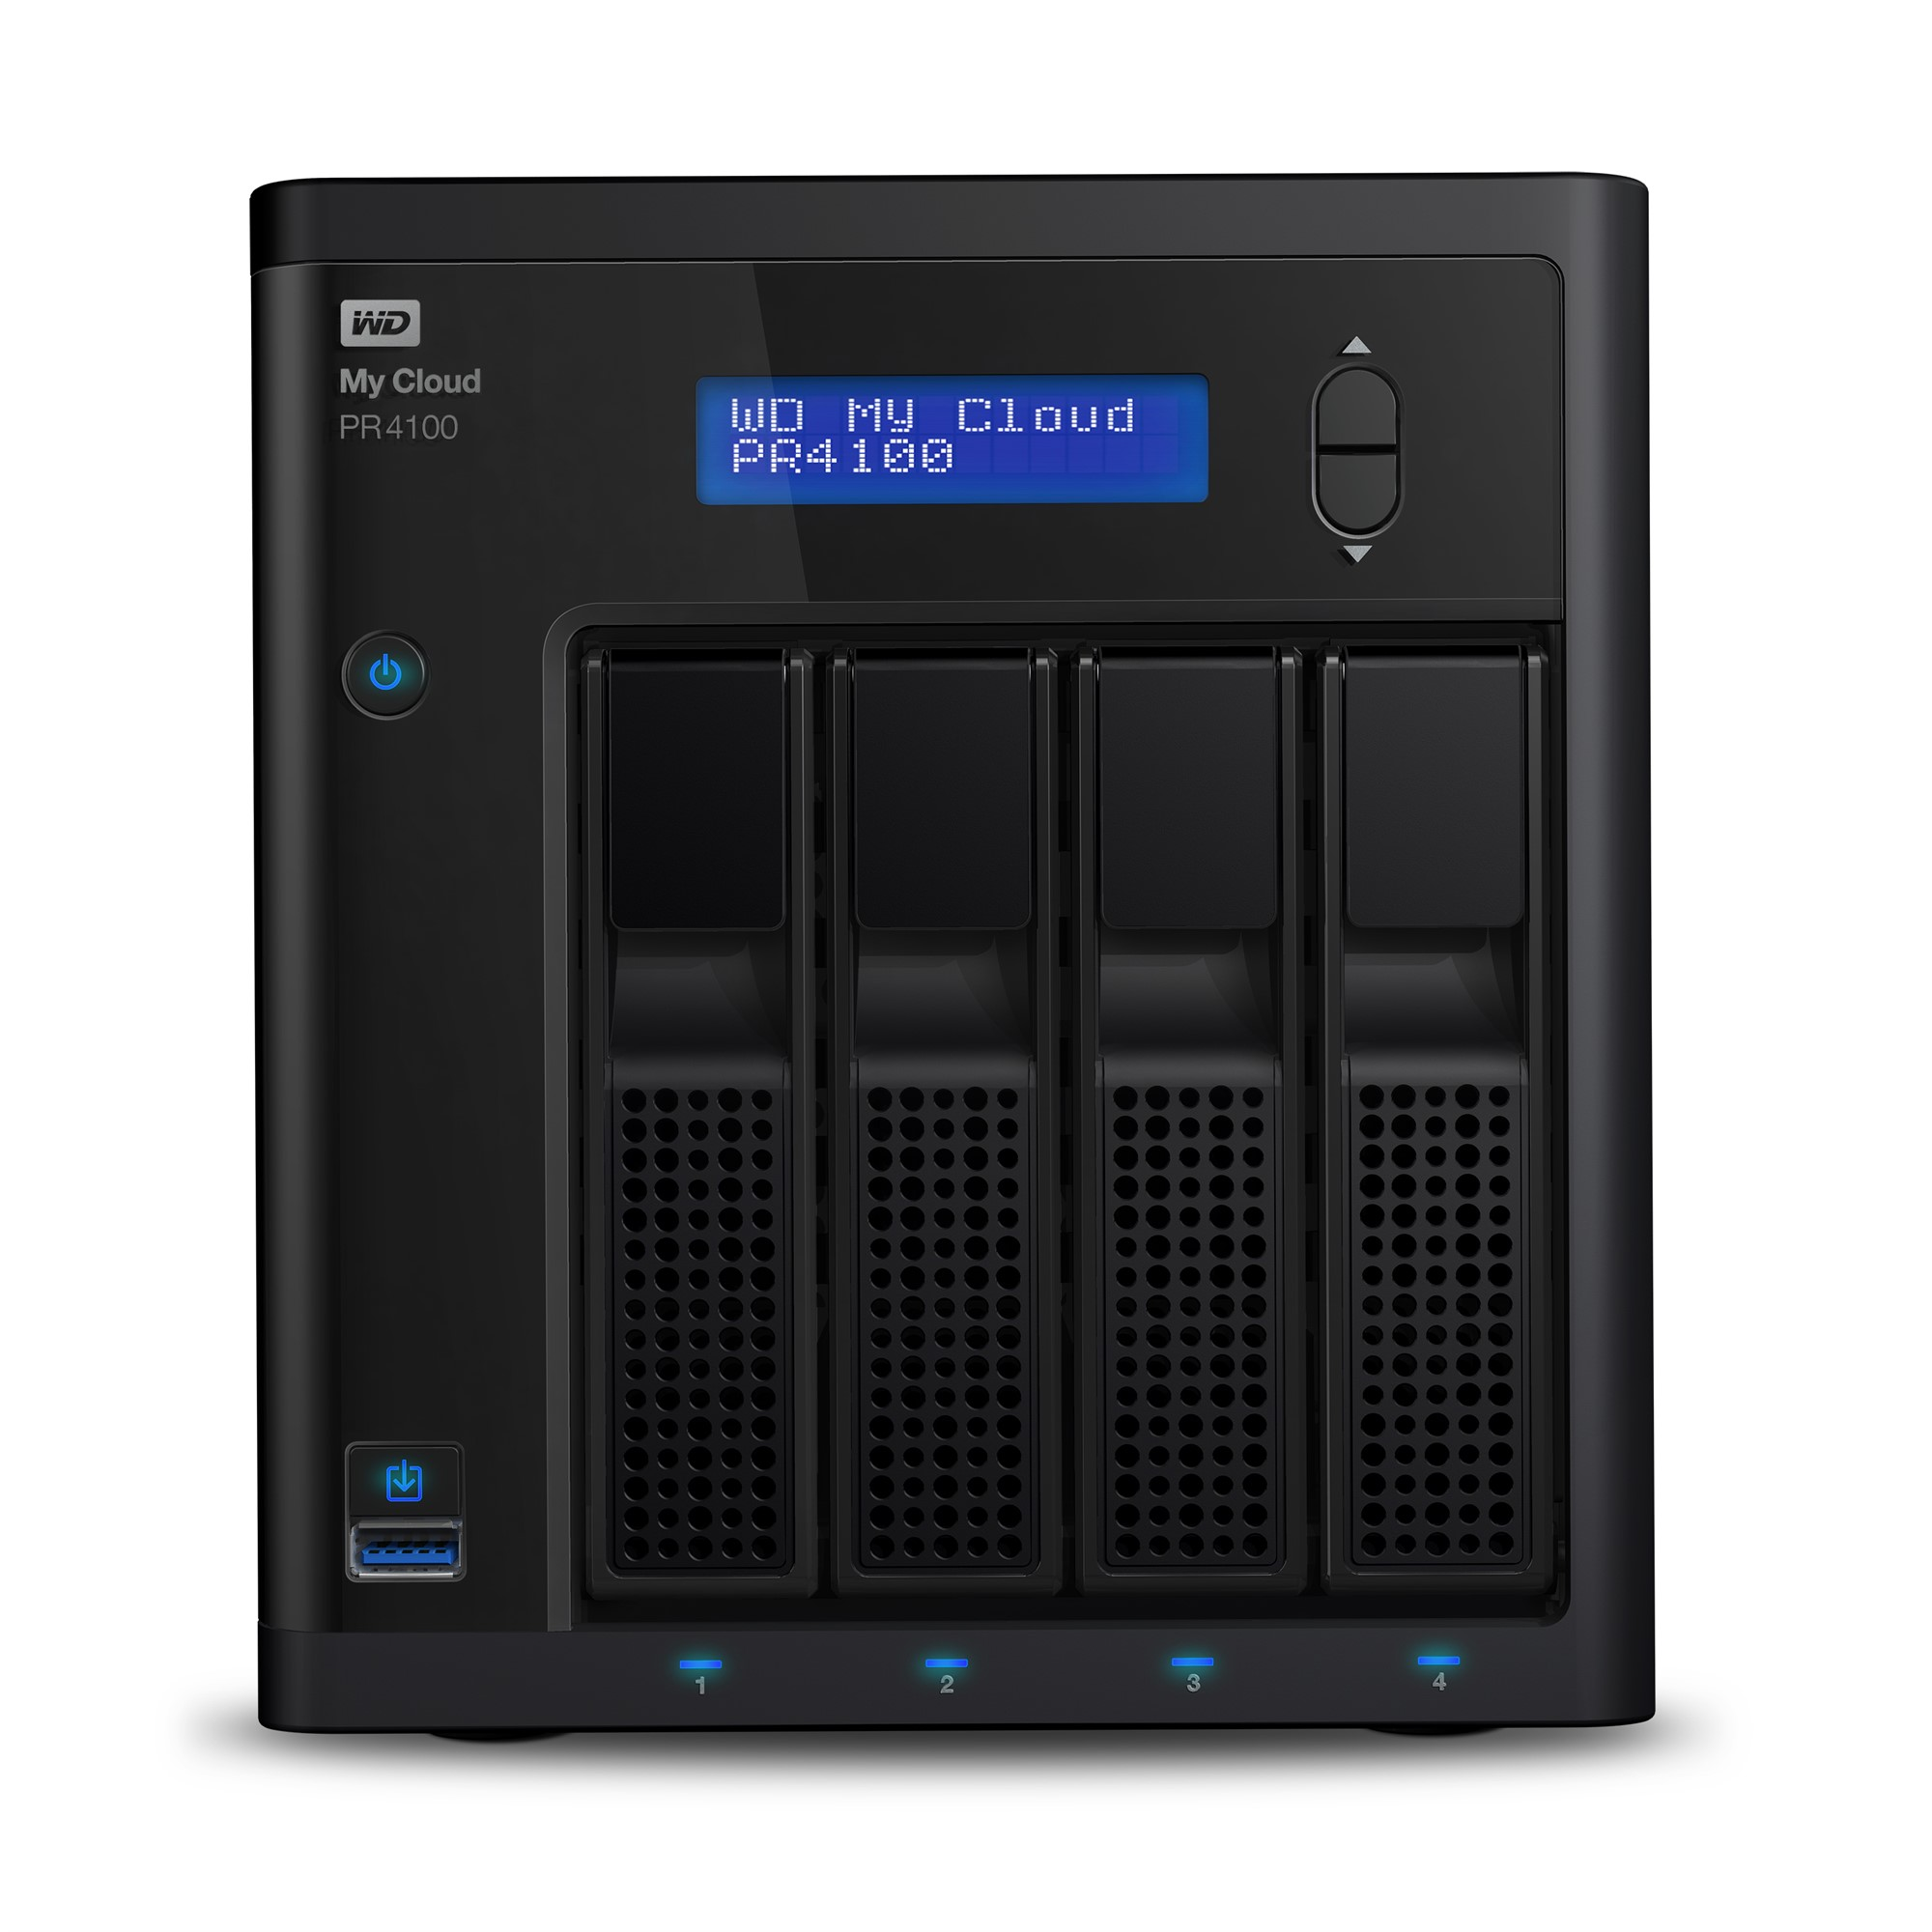 WESTERN DIGITAL MY CLOUD PR4100 NAS DESKTOP ETHERNET LAN BLACK